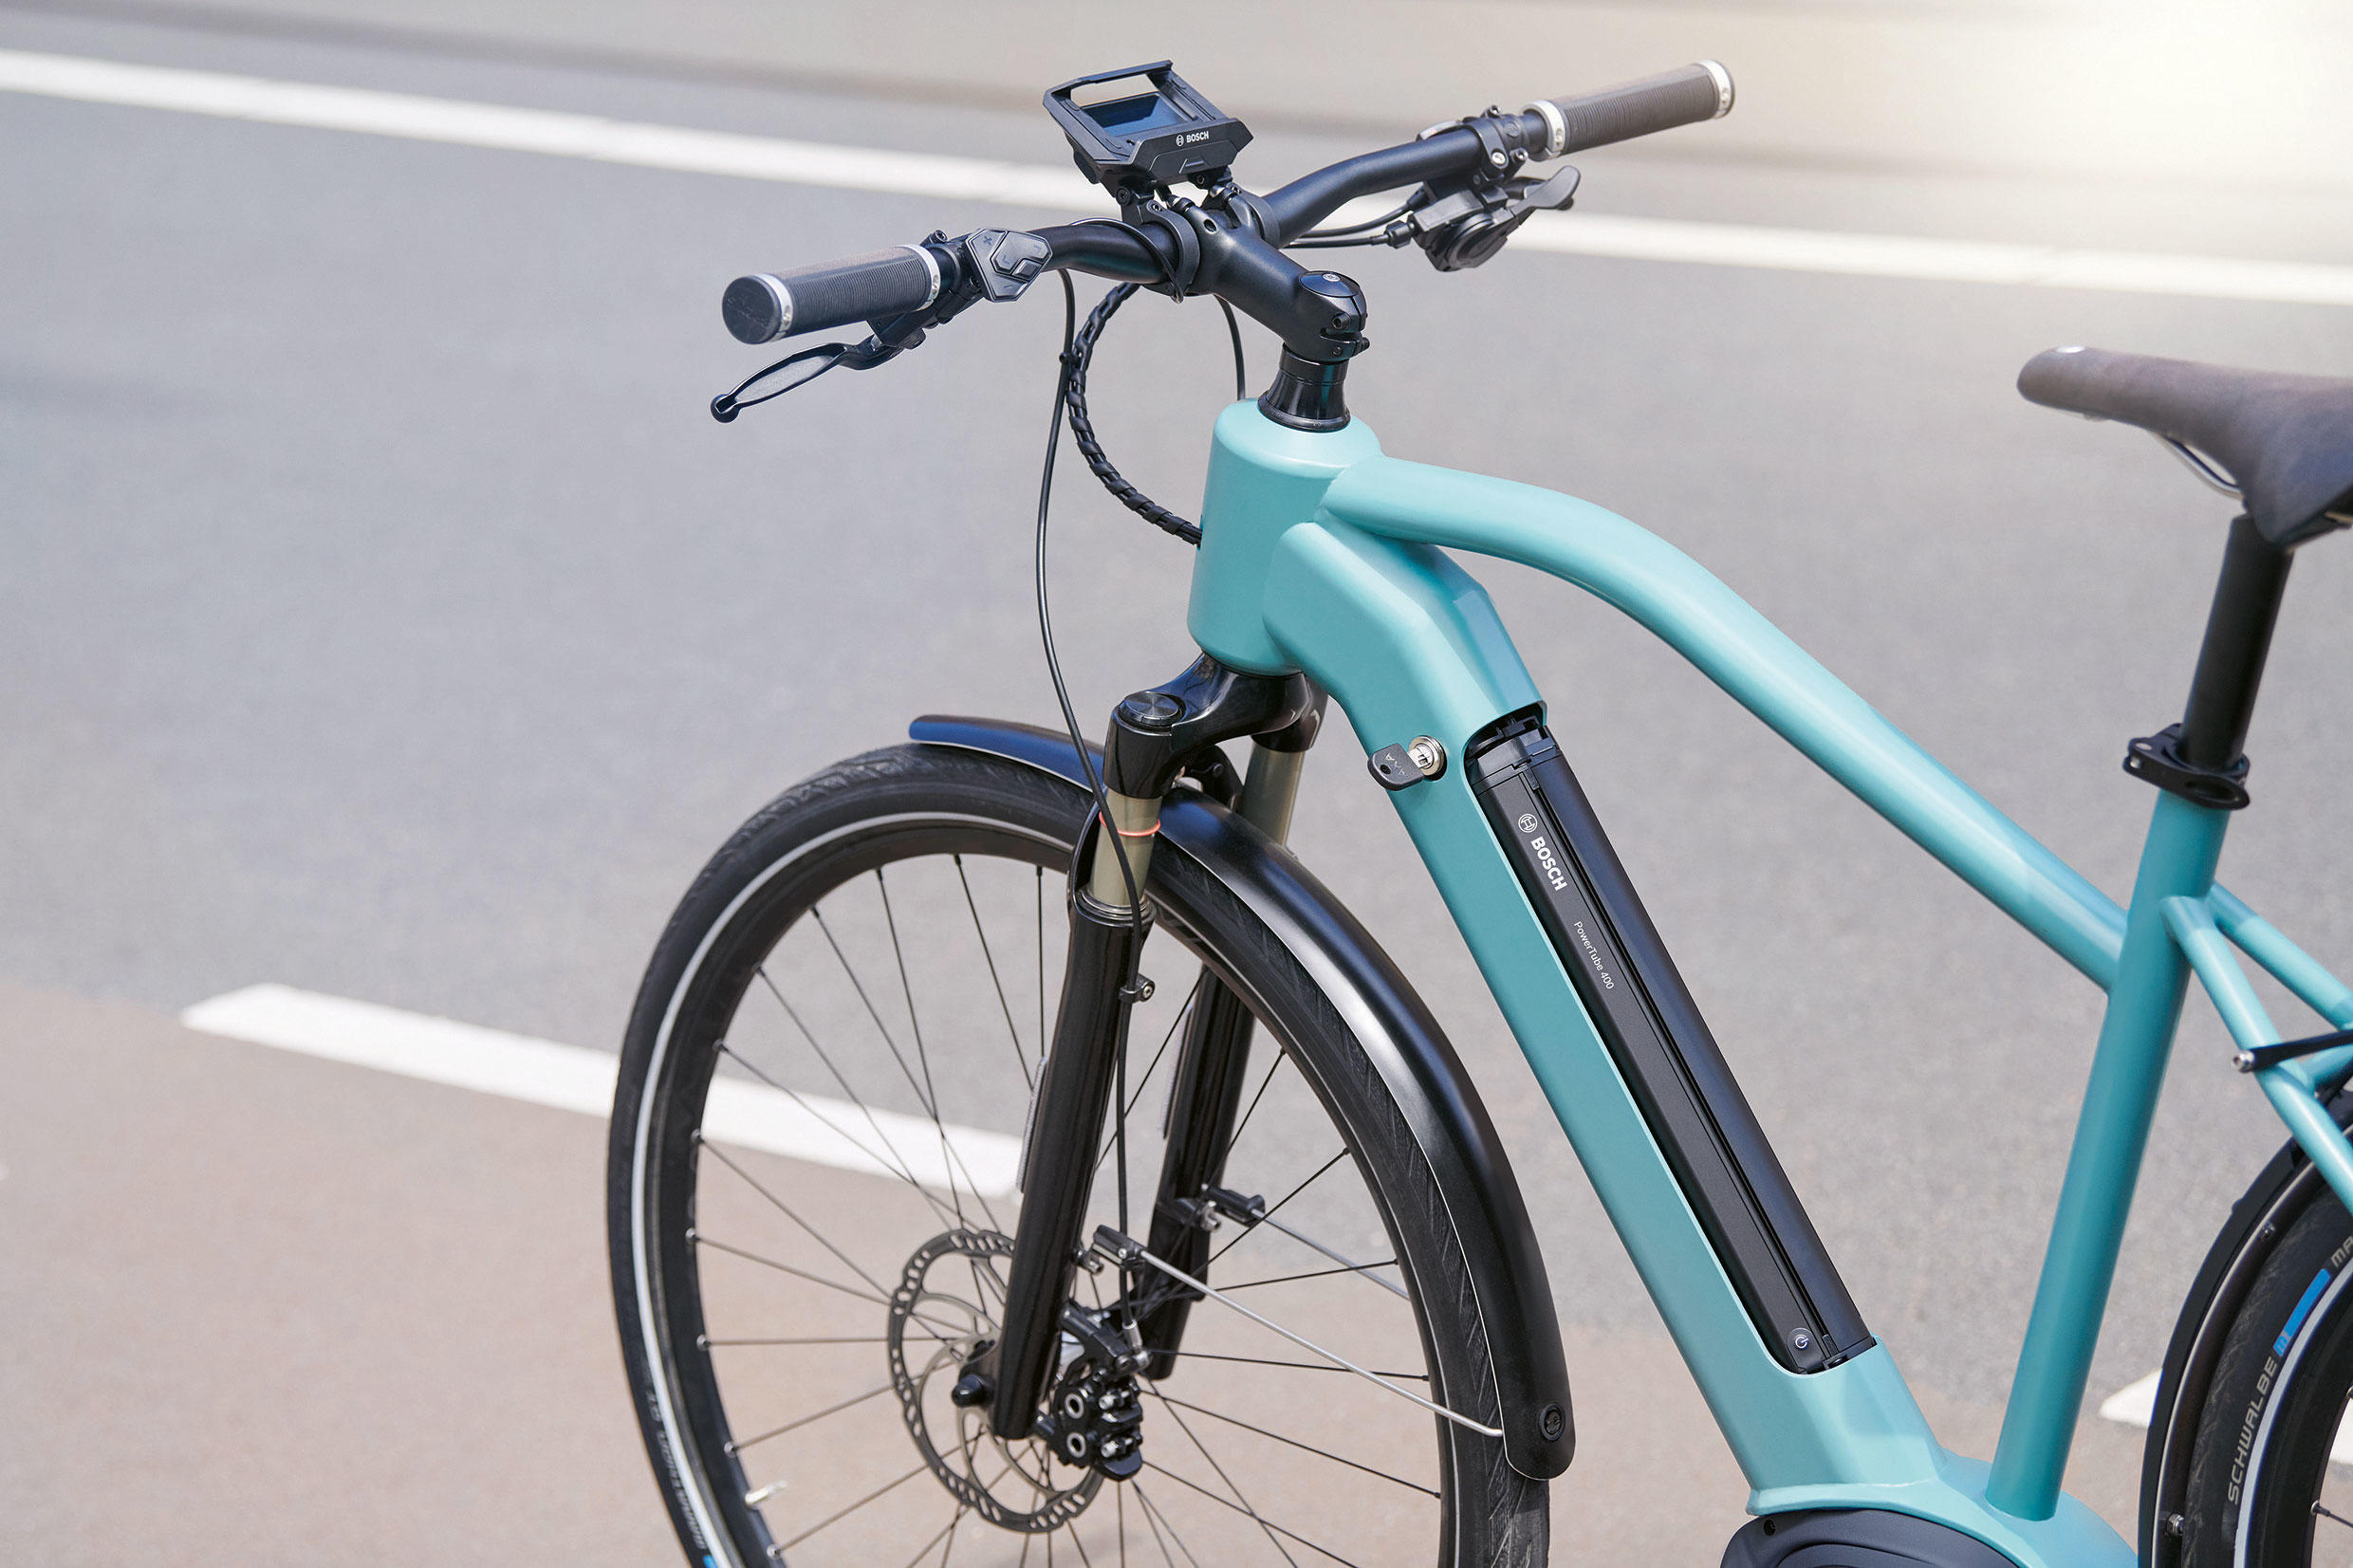 Bosch's PowerTube 400 battery lends a sleeker look to 2020 e-bikes, while its handlebar-mounted SmartphoneHub shows basic riding data and offers a smartphone mount.